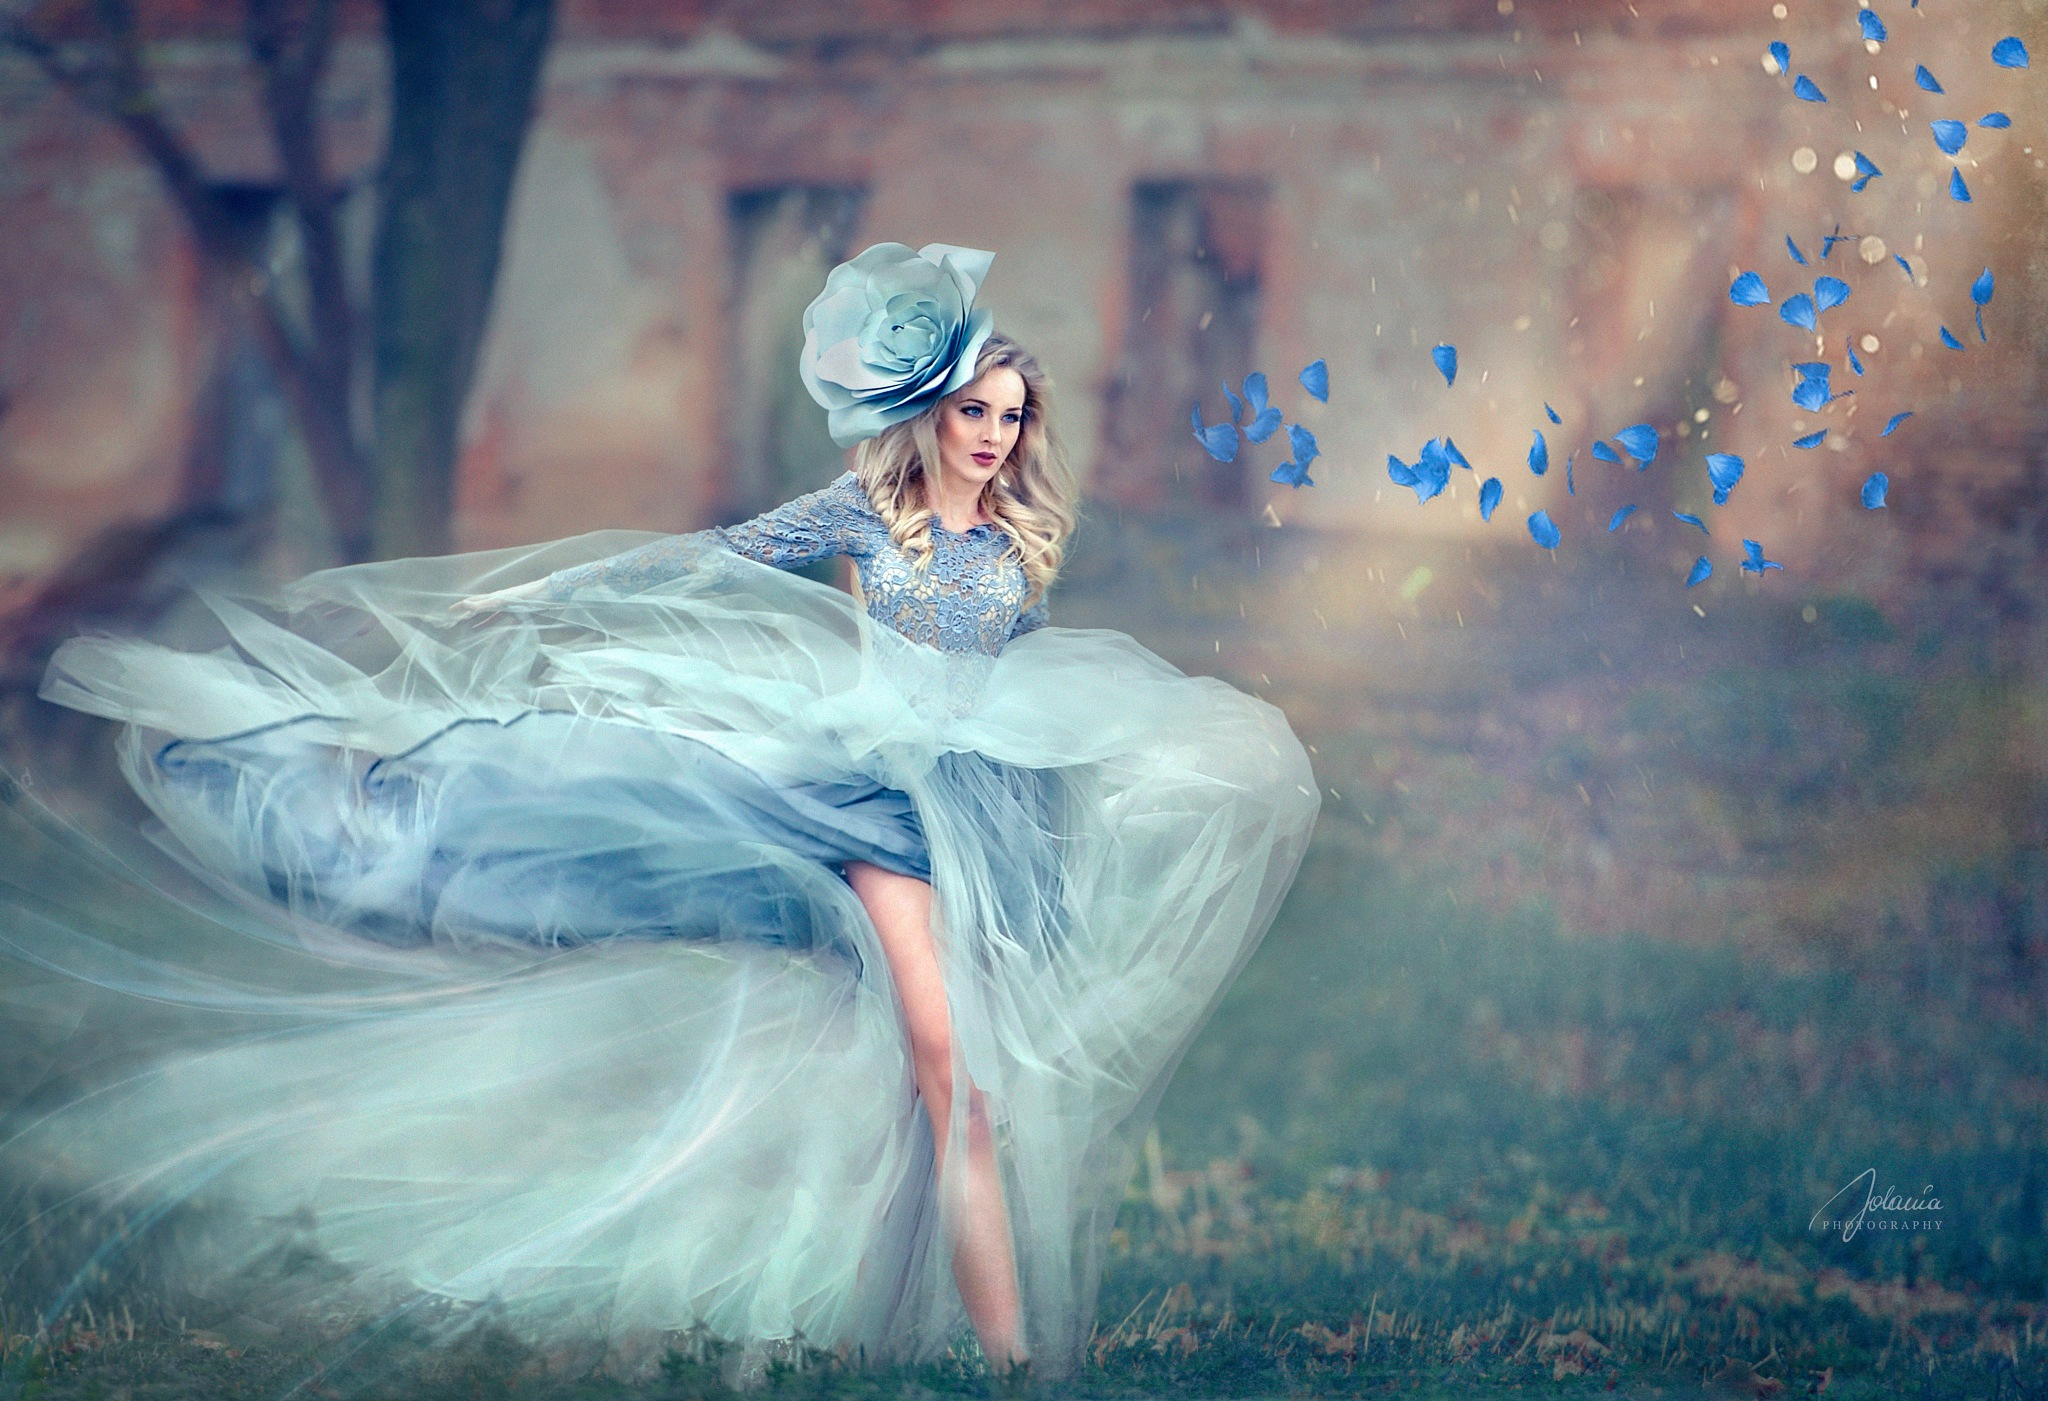 My own Fairytale by Jolania